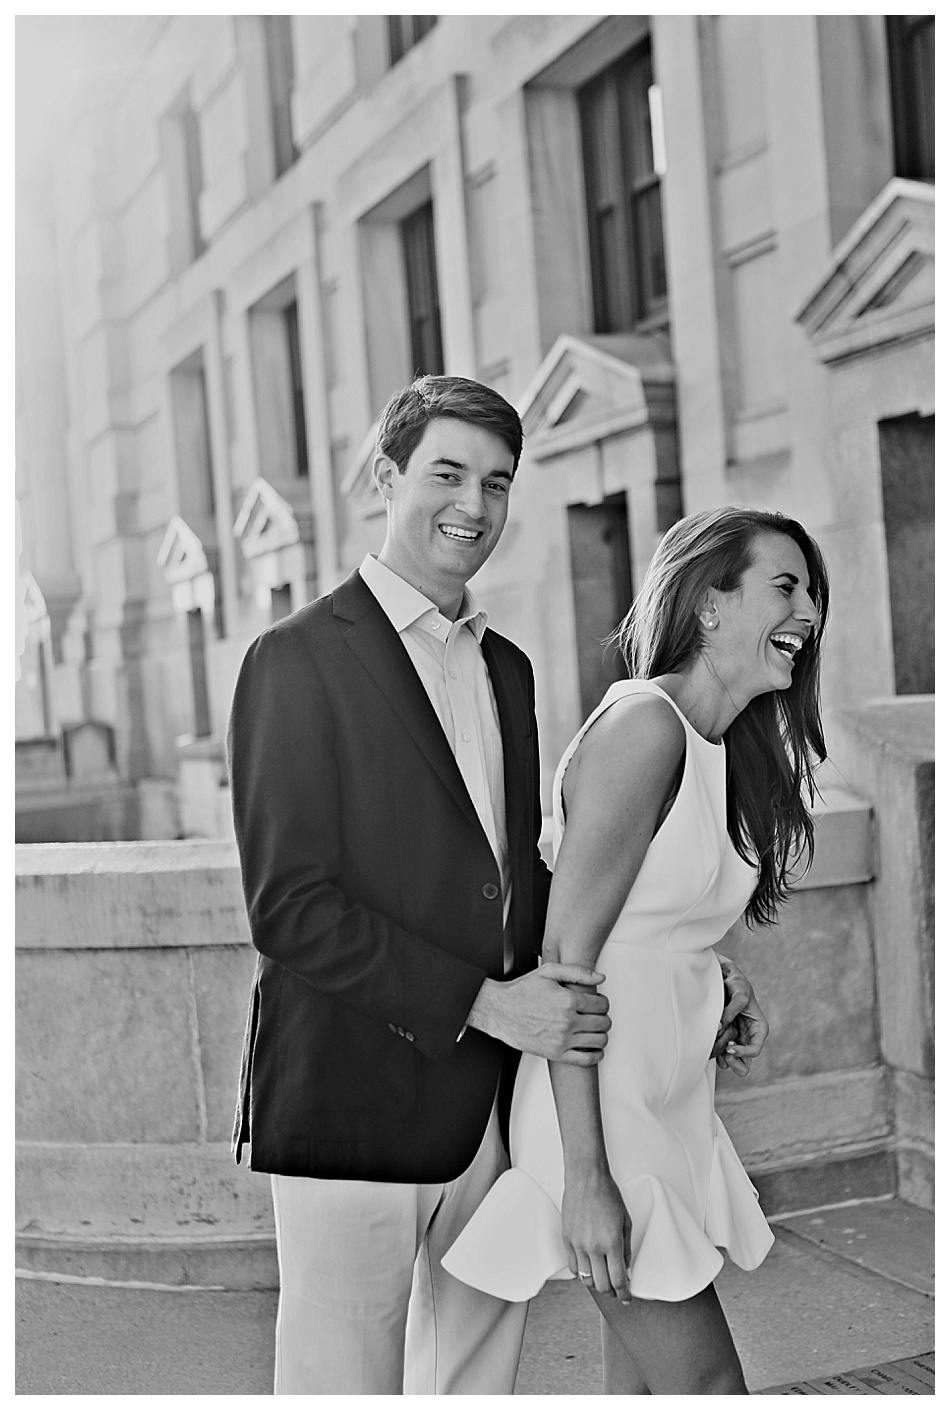 Downtown Kansas City Engagement Session | http://www.emmalinebride.com/real-weddings/downtown-kansas-city-engagement-session-snap-photography/ | photo: SNAP Photography - Kansas City Missouri Wedding Photographer